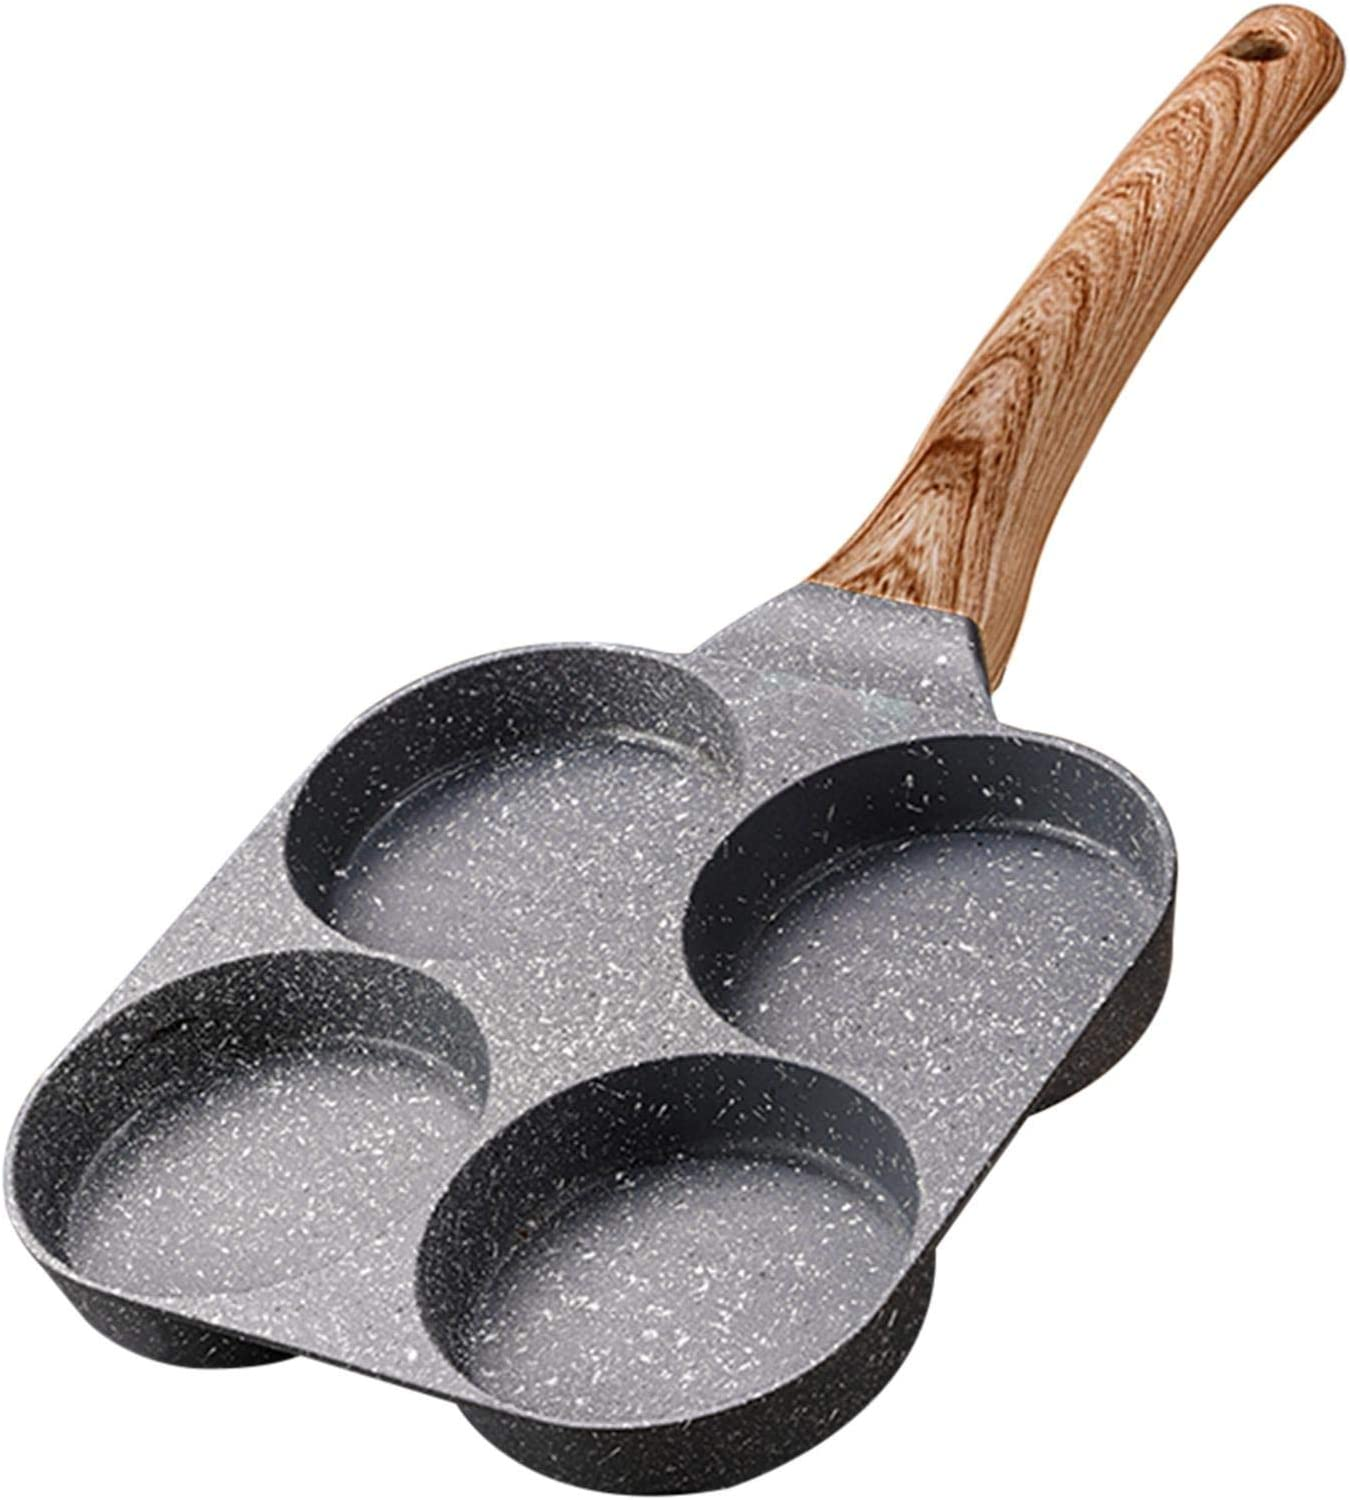 YBENWL Egg Frying Pan, Non Stick Egg Cooker Pan 4-Hole Omelet Pan Egg Pancake Pan with Wooden Handle,Gas Stove Fried Poached Egg Pan for Poaching Eggs, Work with Open Flame and Gas Stove